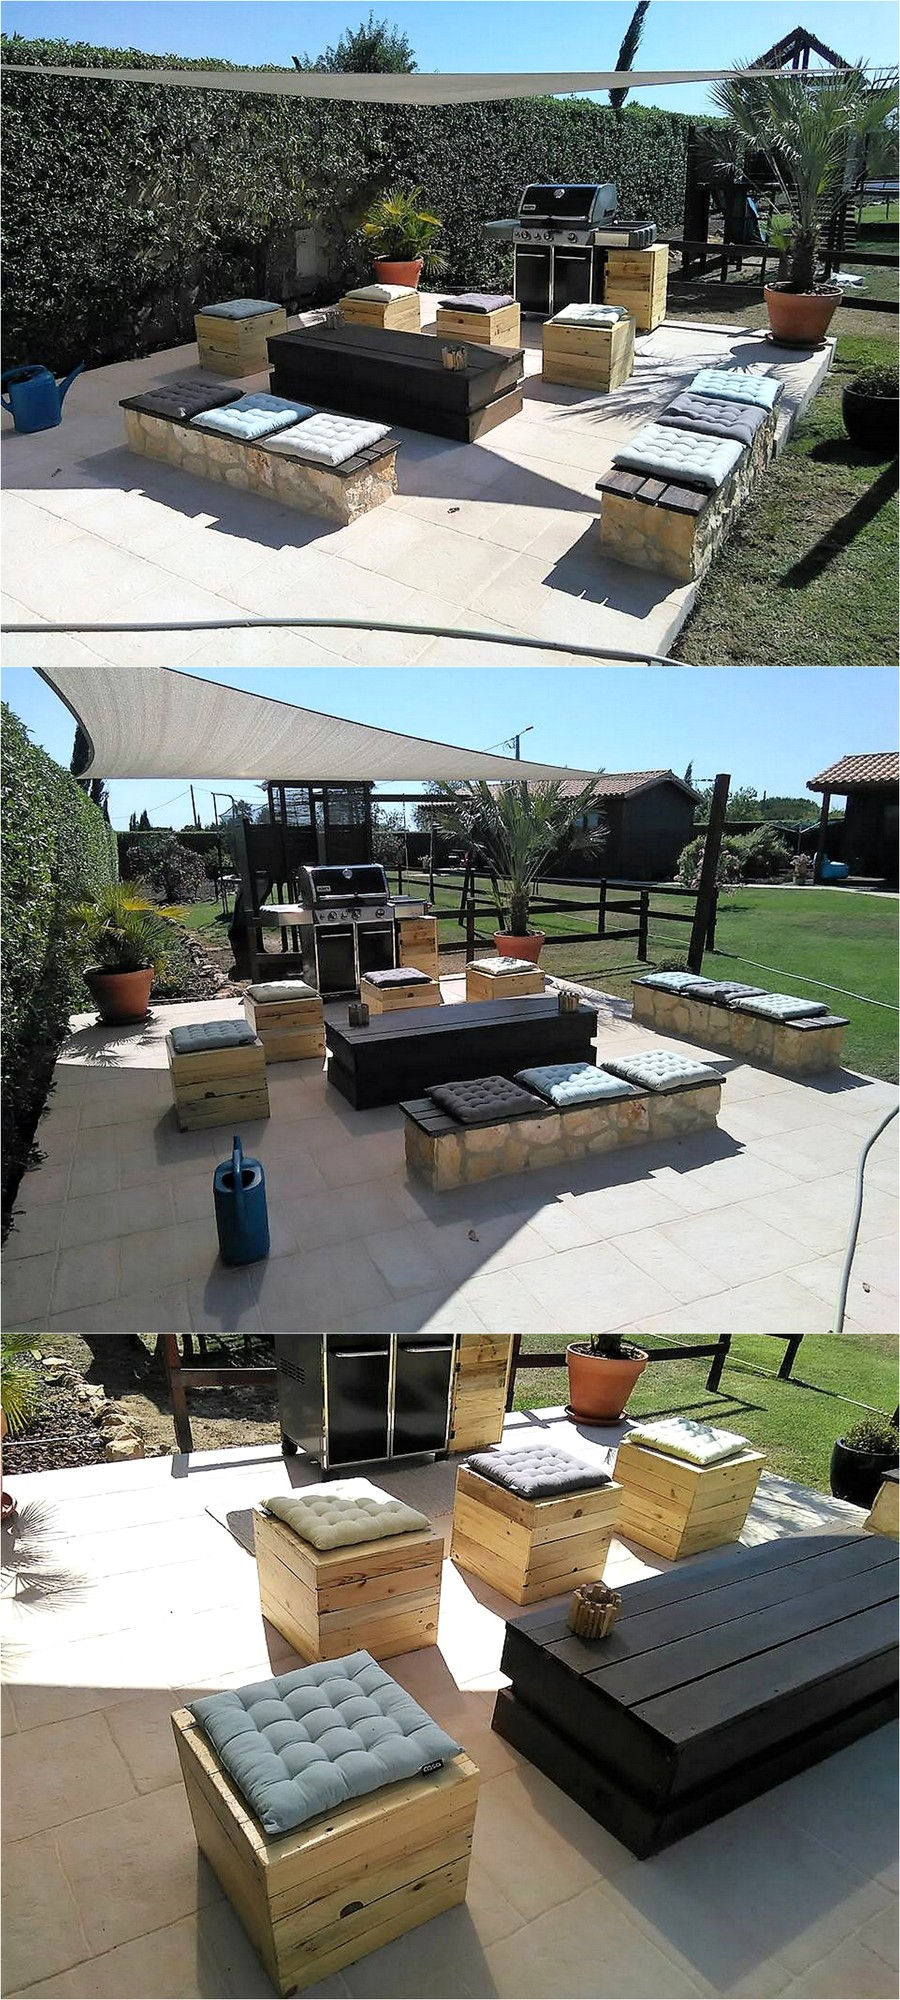 recycled-pallets-garden-barbecue-zone